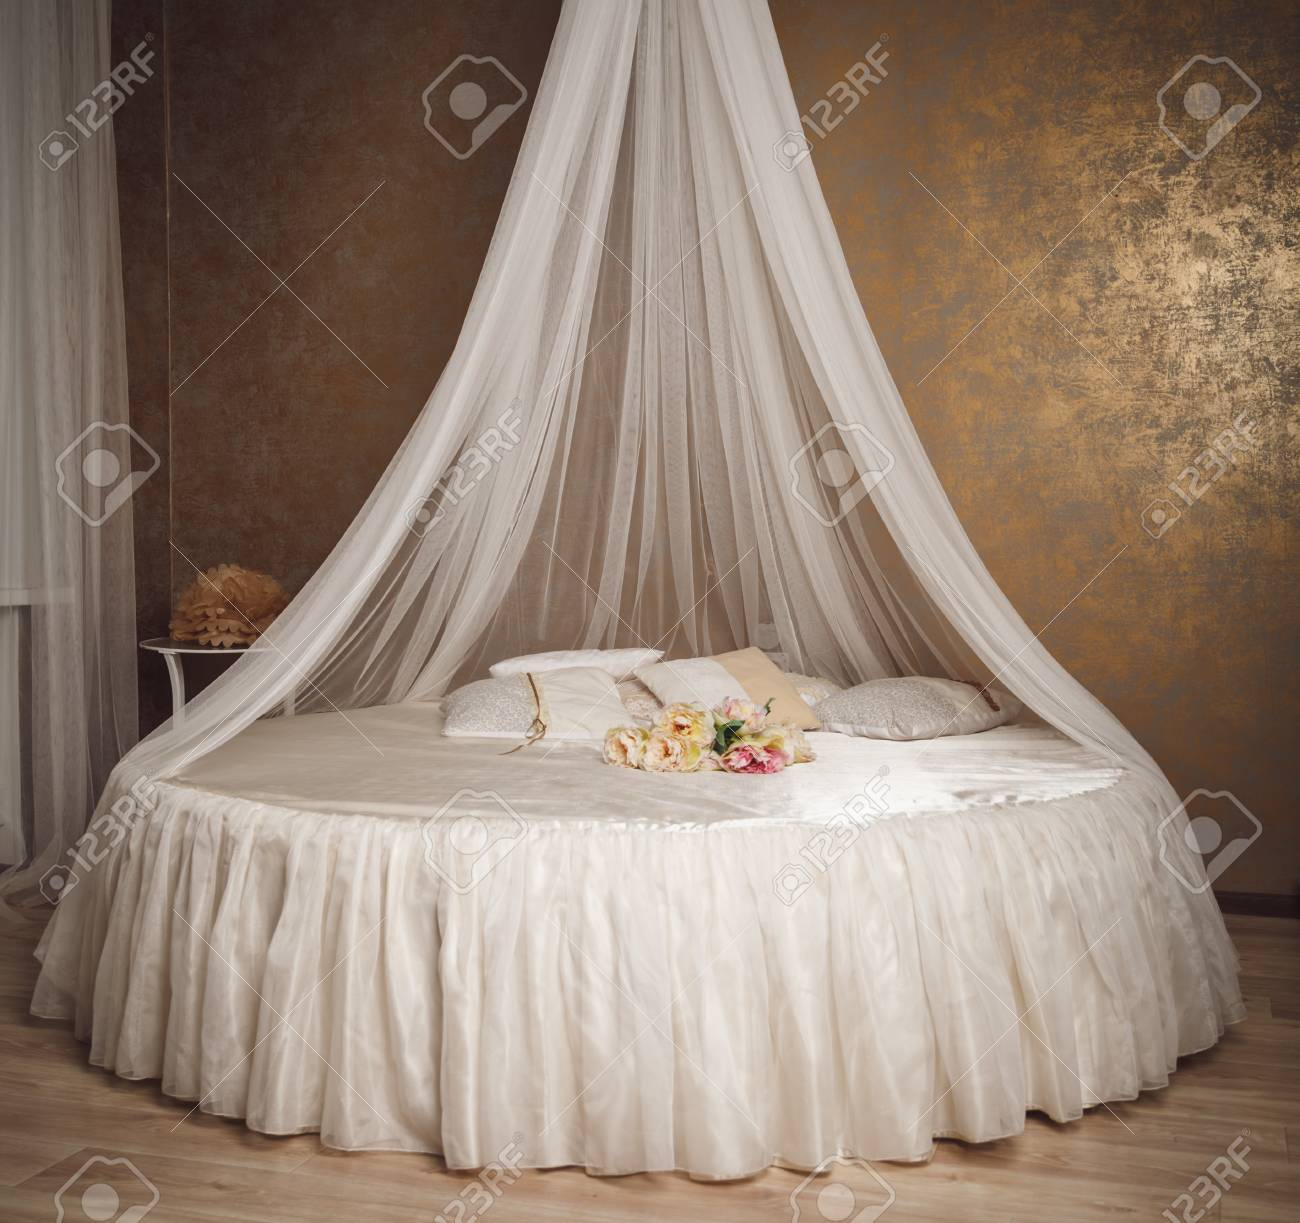 Home Interior With White Circle Bed With Canopy. Stock Photo   55495898